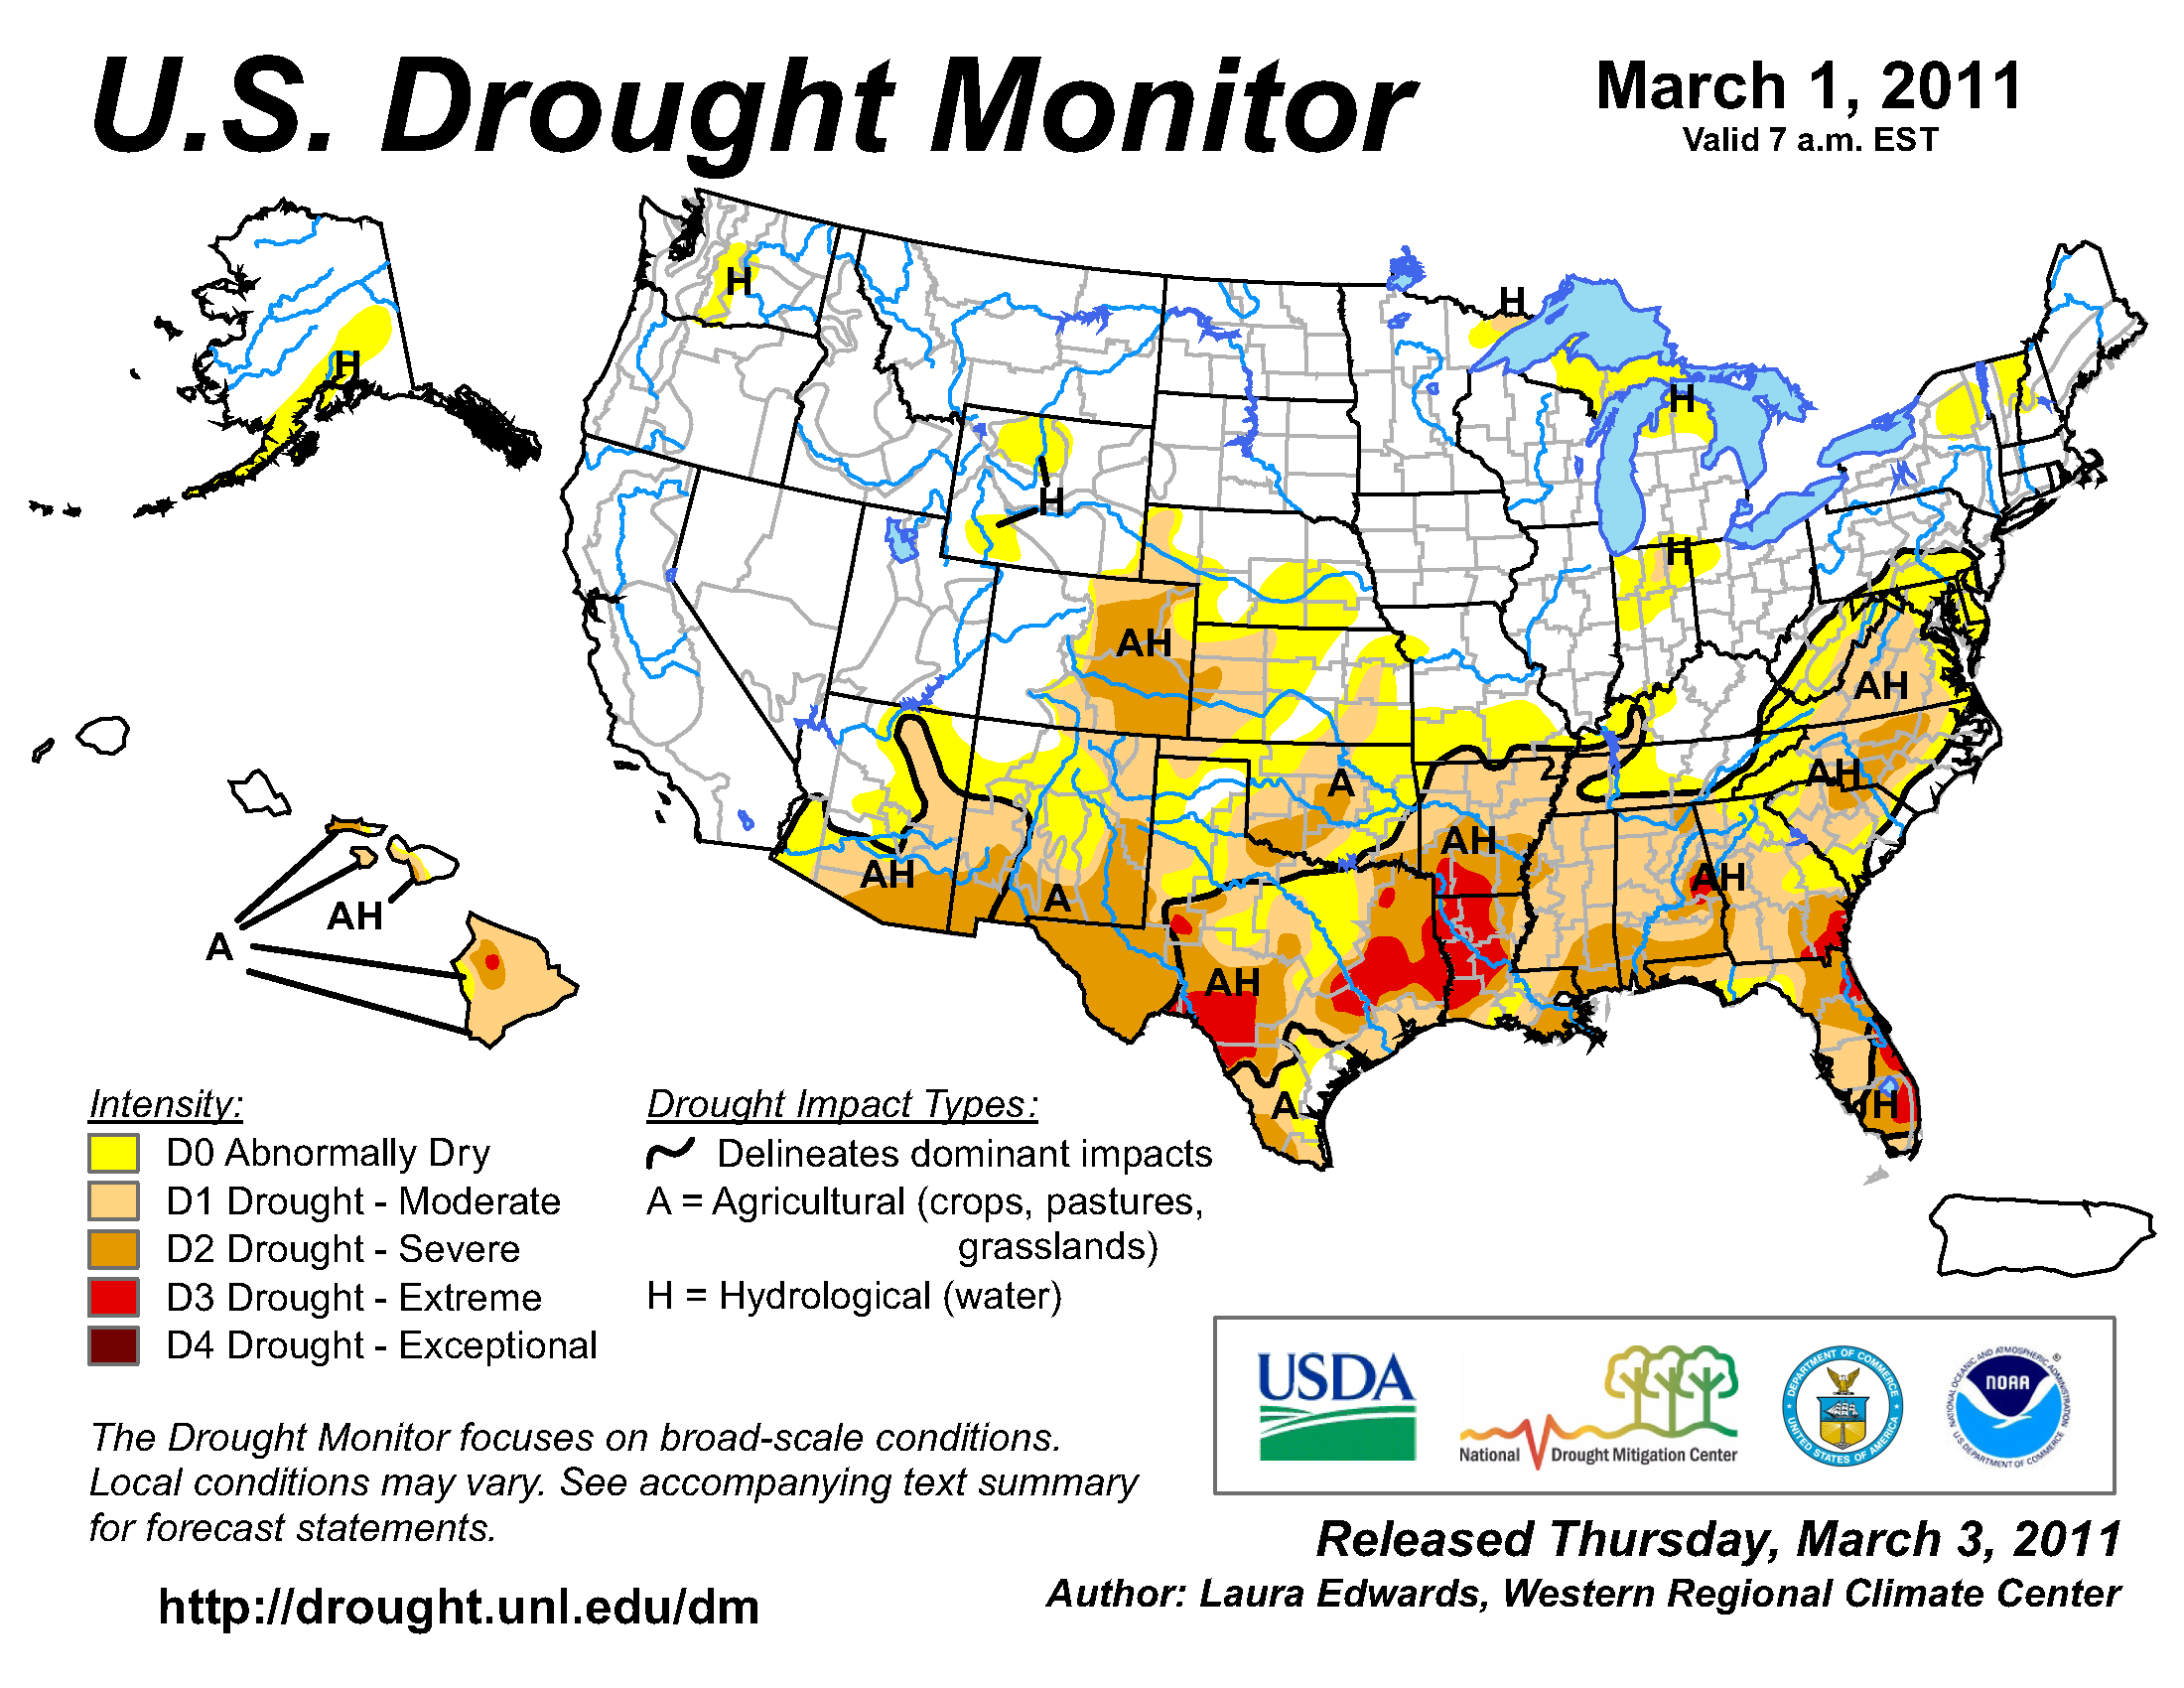 U.S. Drought Monitor map from 1 March 2011